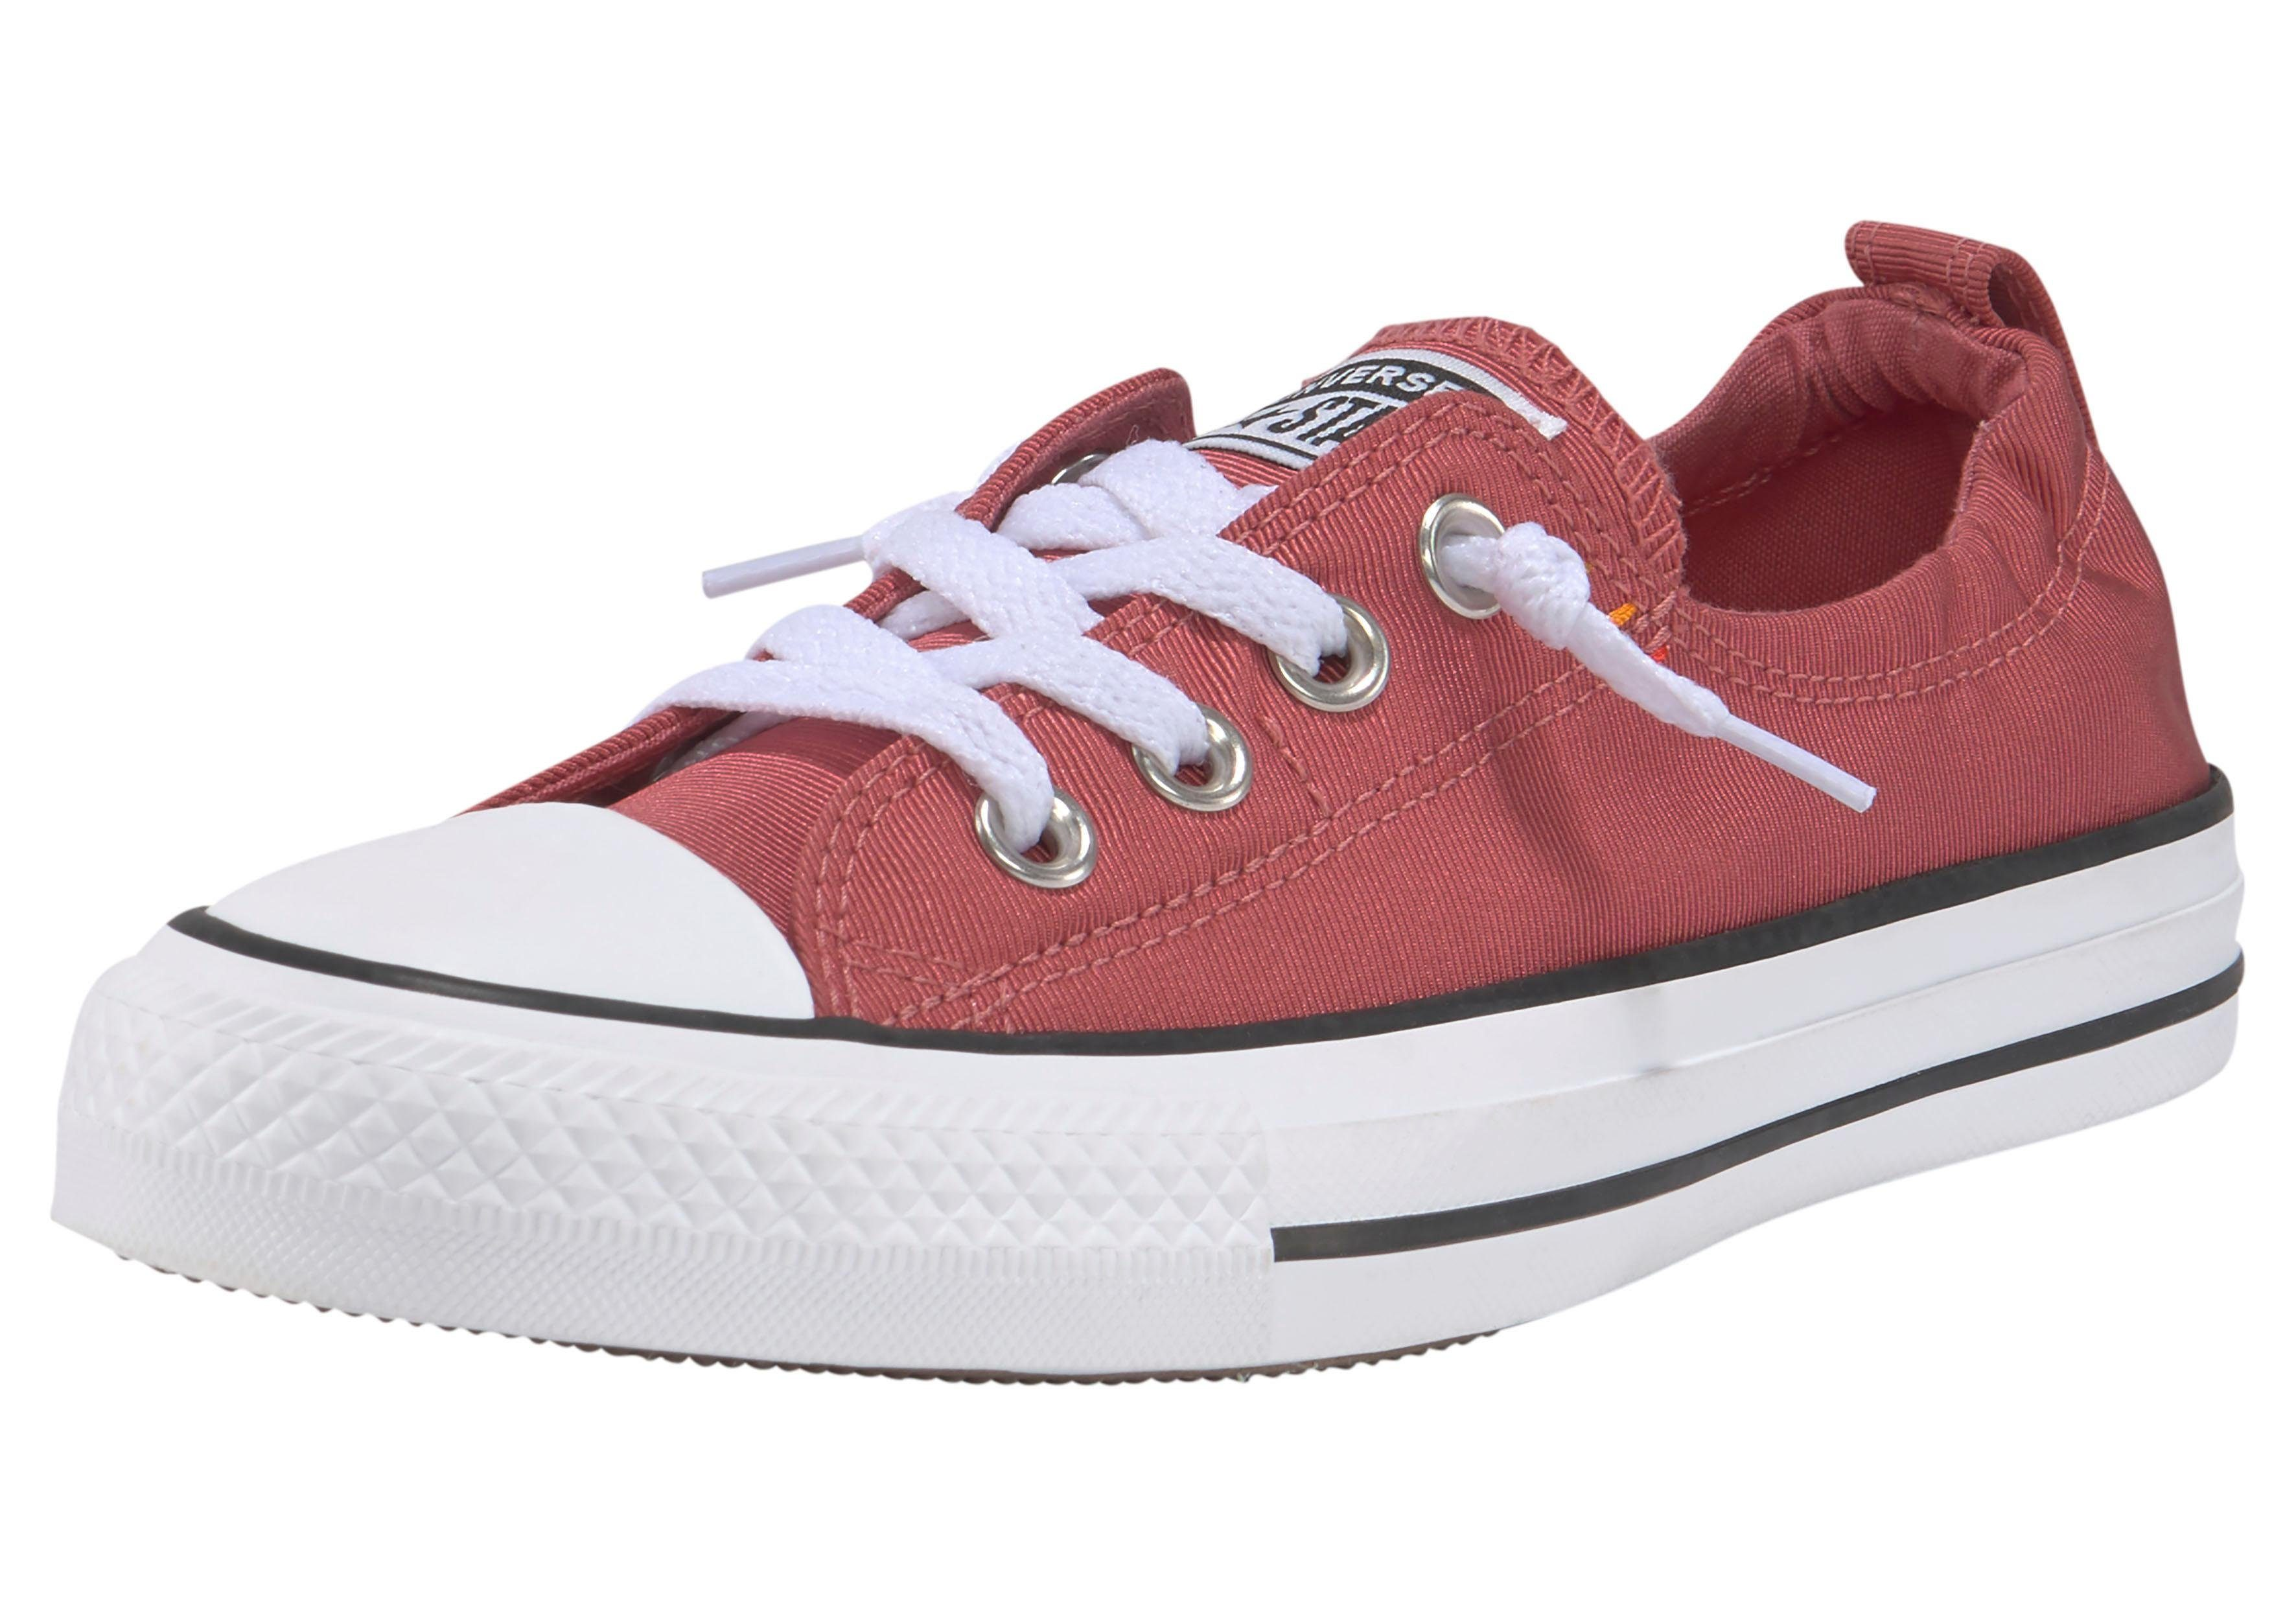 Converse »CHUCK TAYLOR ALL STAR SHORELINE ALL OF THE STARS S OX« Sneaker online kaufen | OTTO